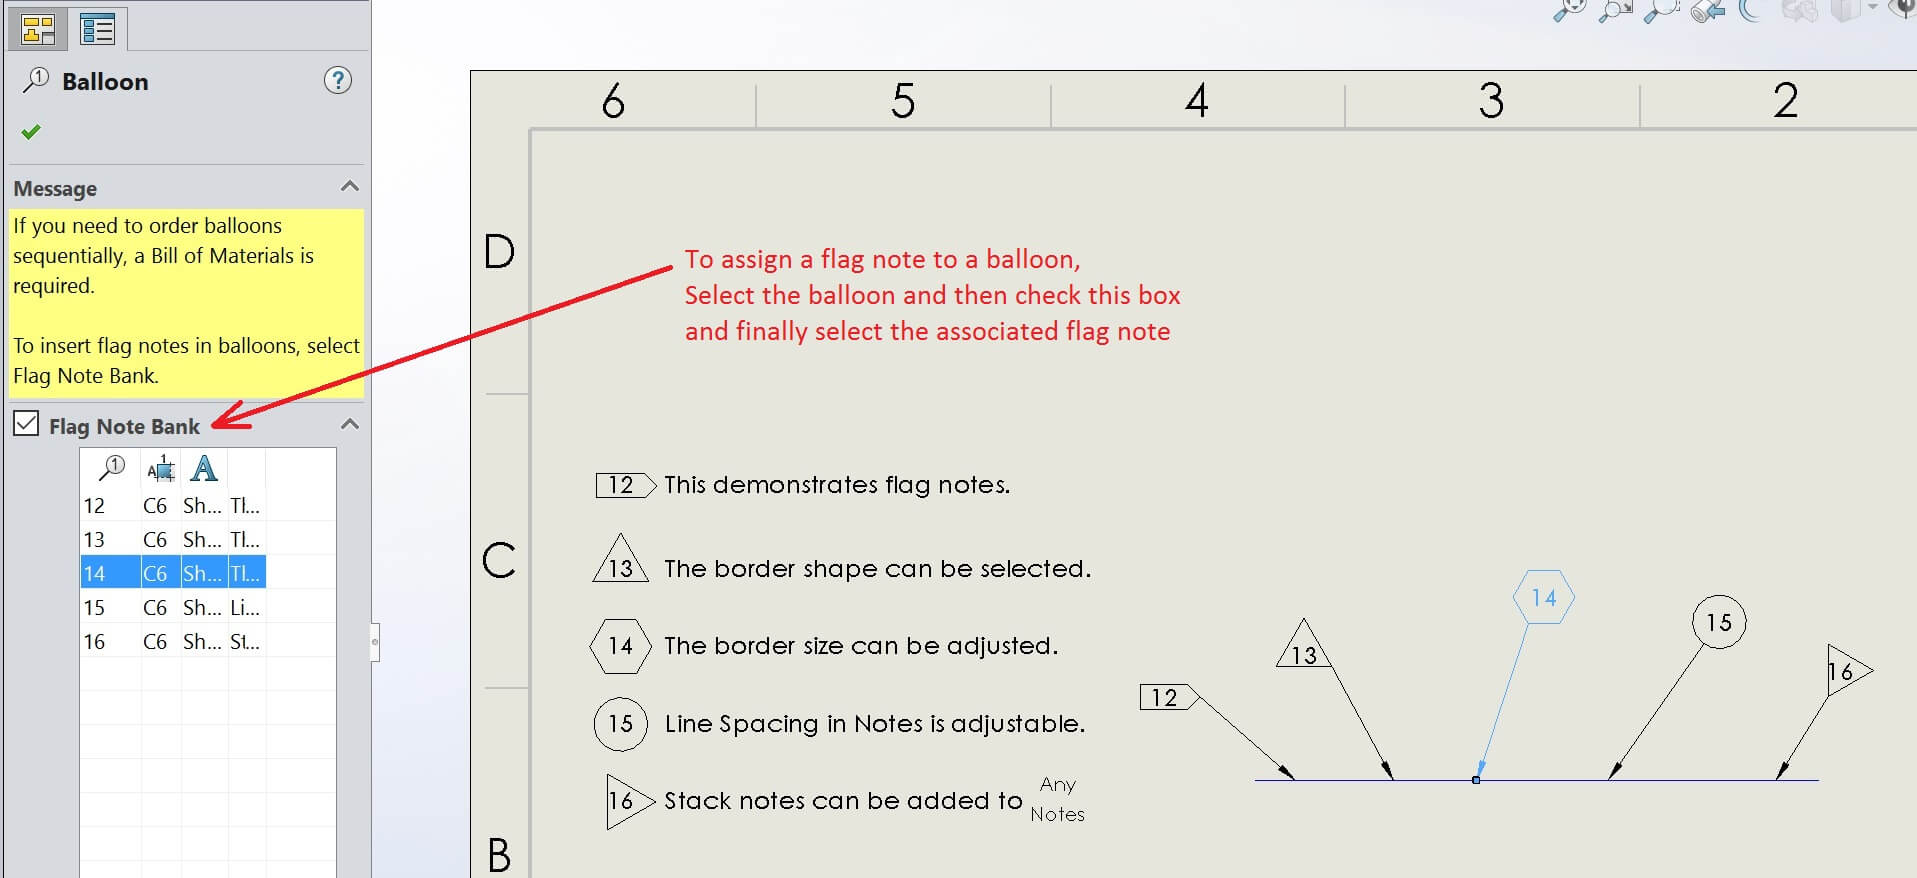 Assign a Flag Note to a Balloon